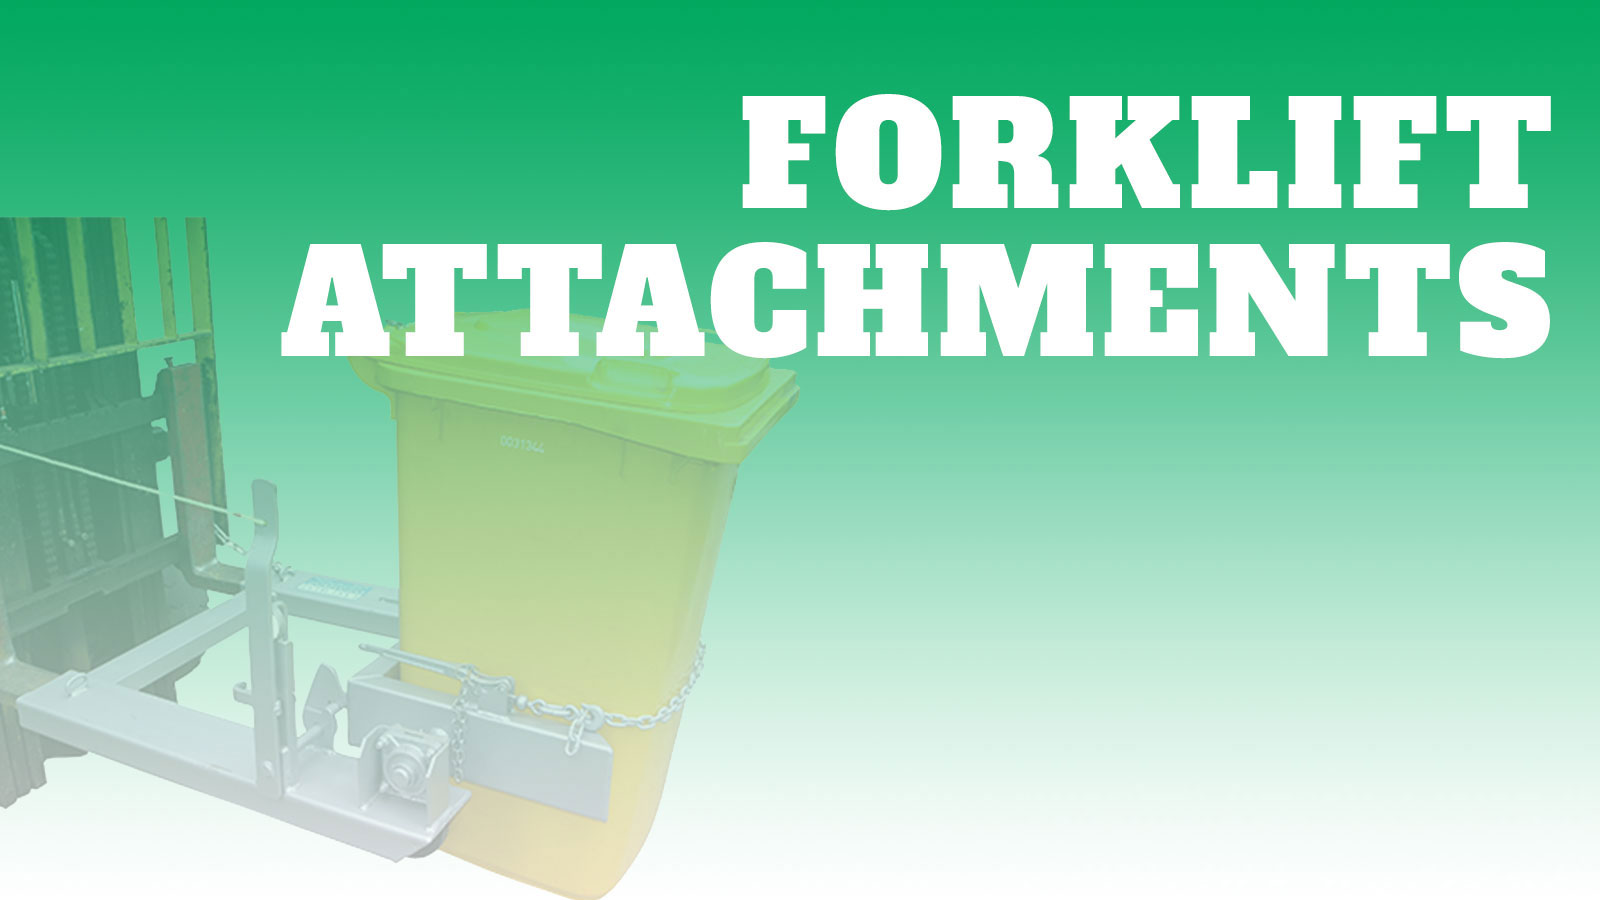 DrumHandling-Forklift-Attachments